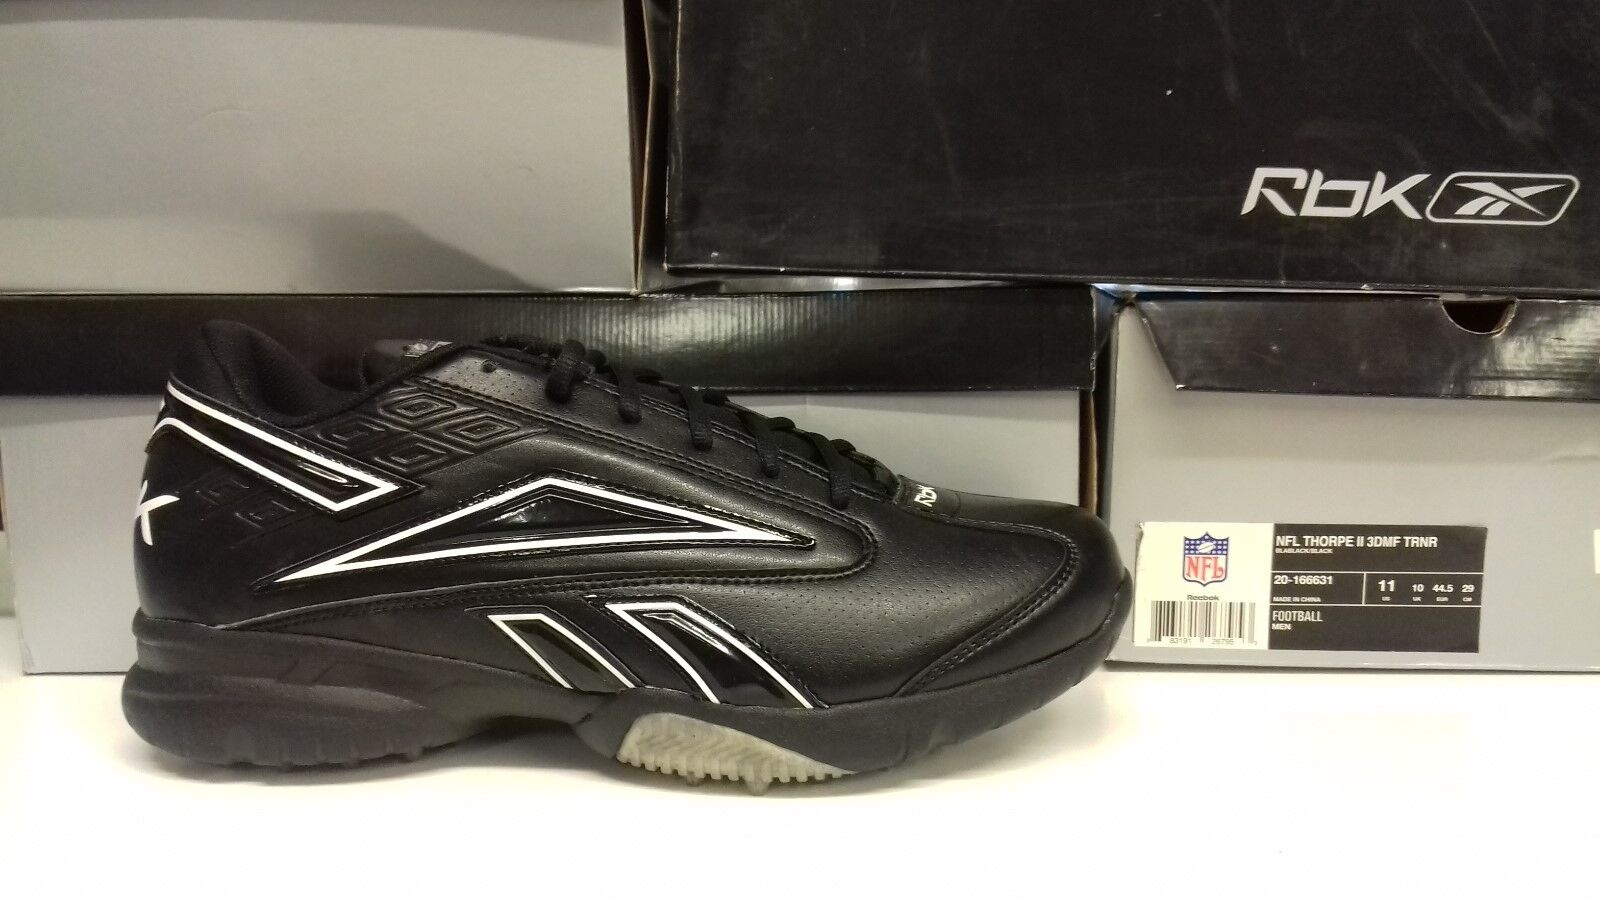 REEBOK MEN FOOTBALL DMF NFL THORPE II 3 DMF FOOTBALL TR2 BLABLACK/BLACK 3e8bbc